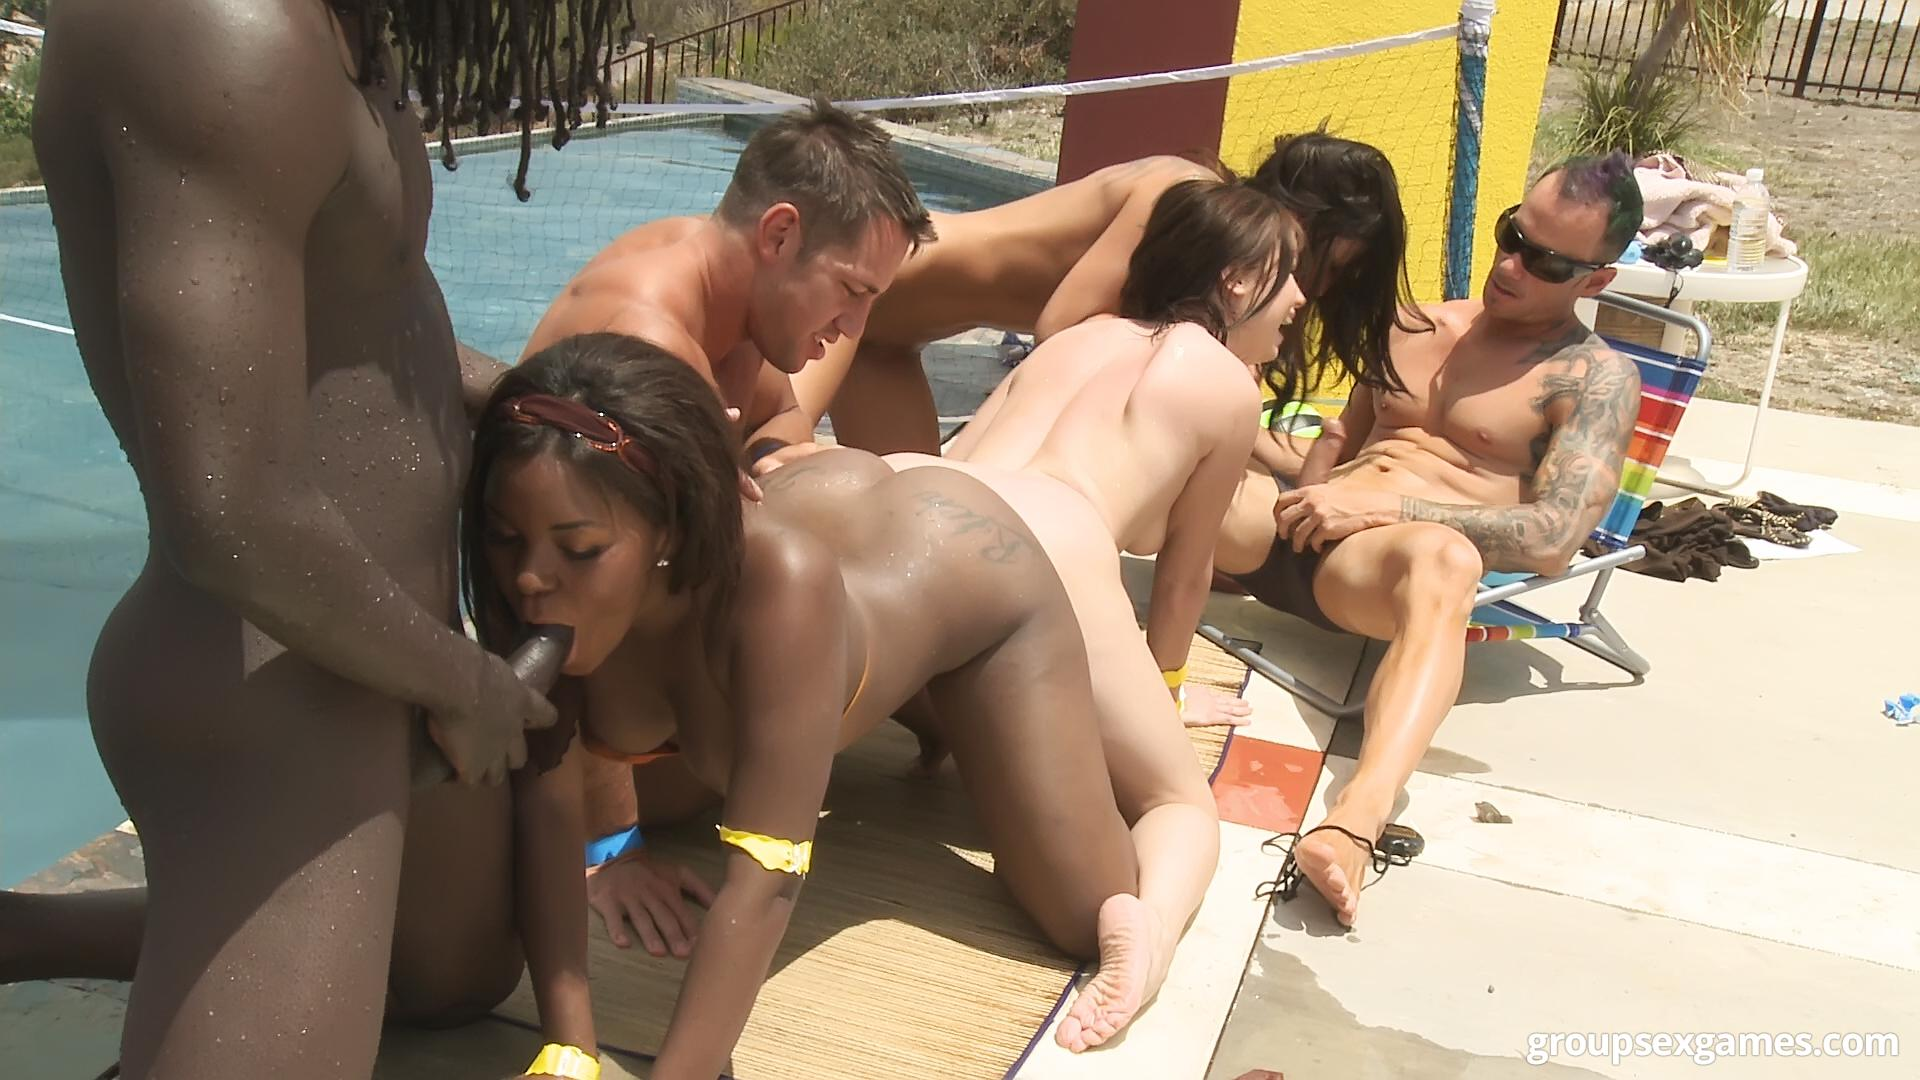 anal porn Group sex at the pool side video